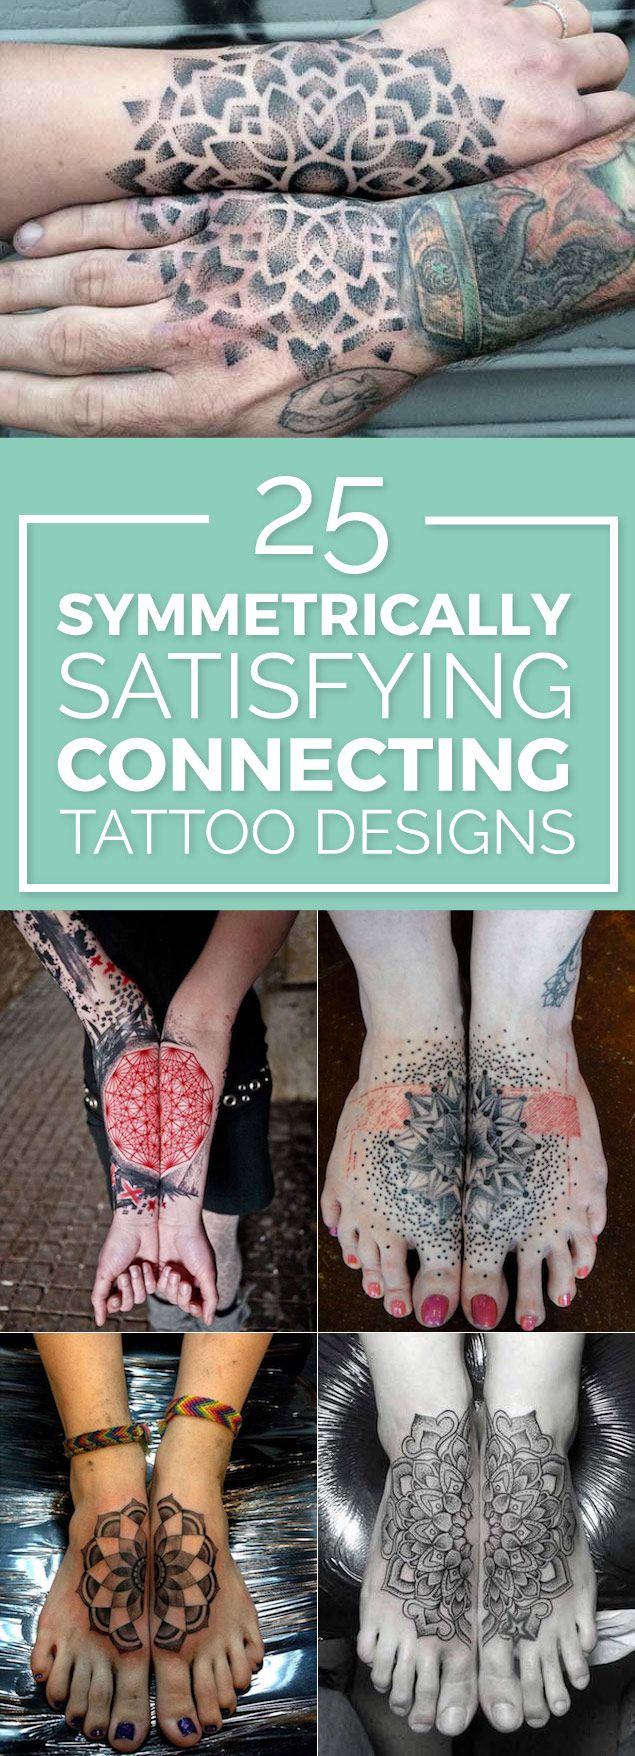 Symmetrically Connecting Tattoo Designs you NEED to see